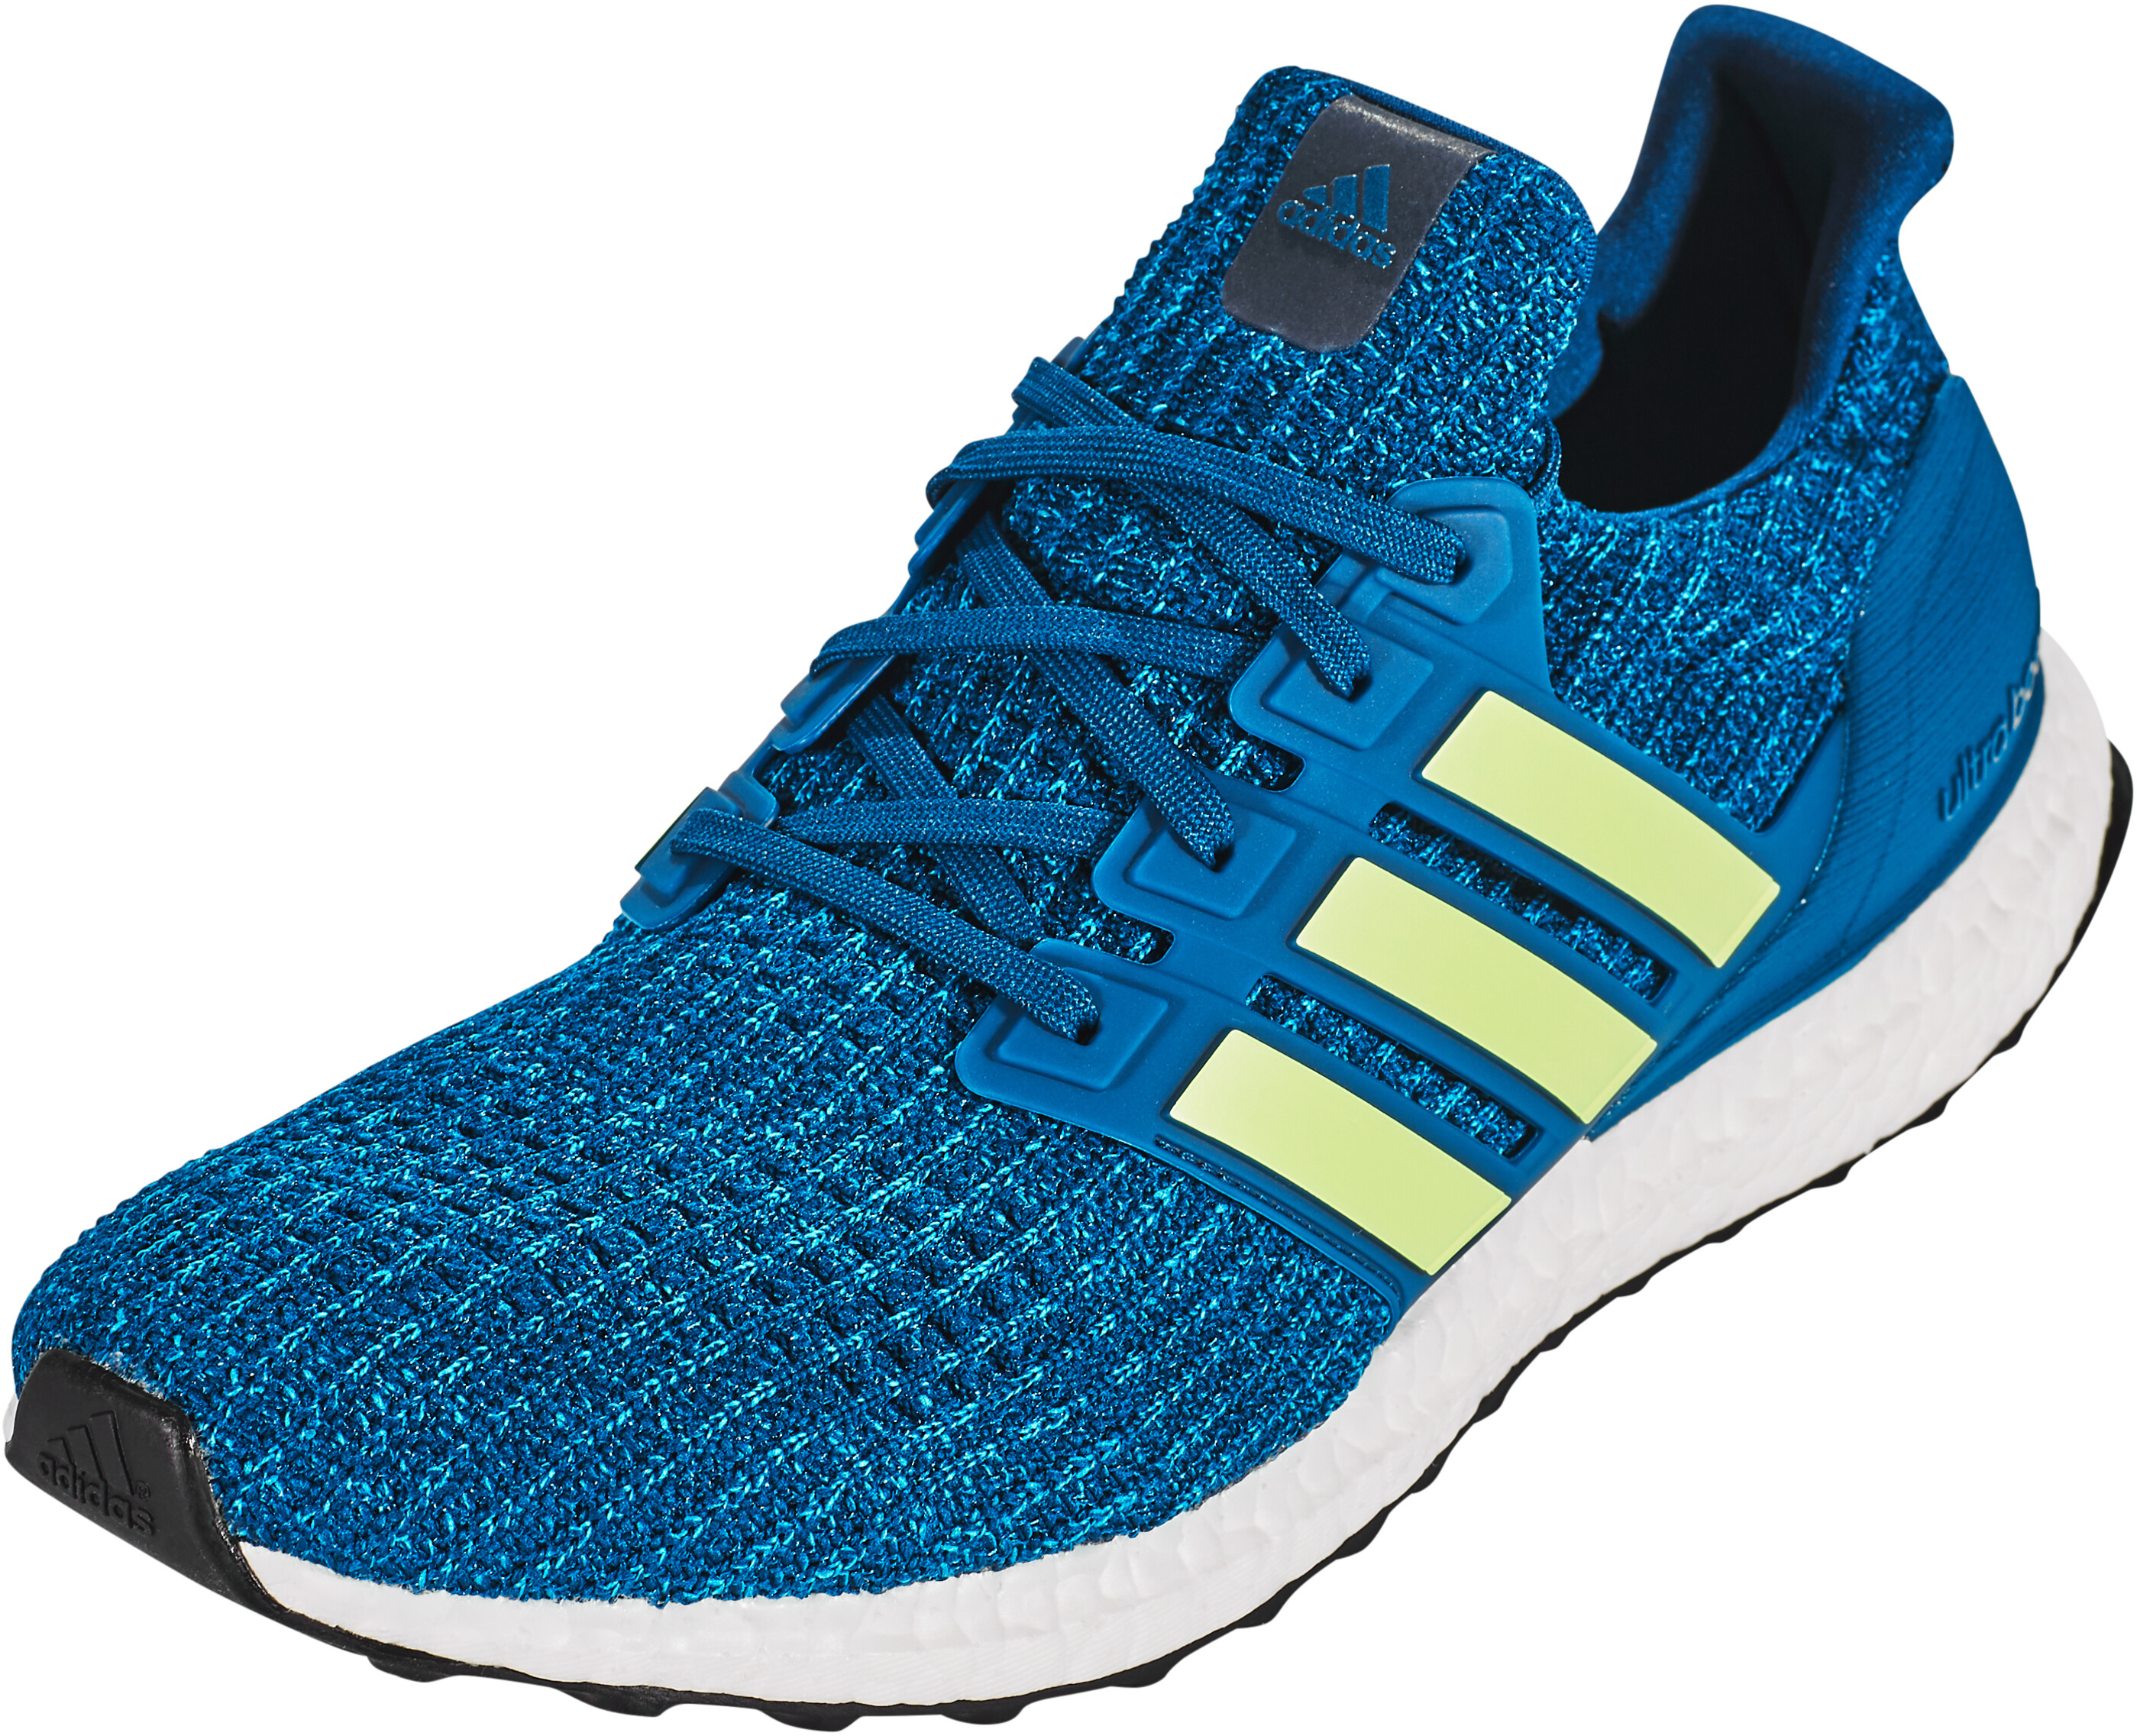 official photos 63065 360fb adidas UltraBoost Running Shoes Men legend marine/hi-res yellow/ftwr white